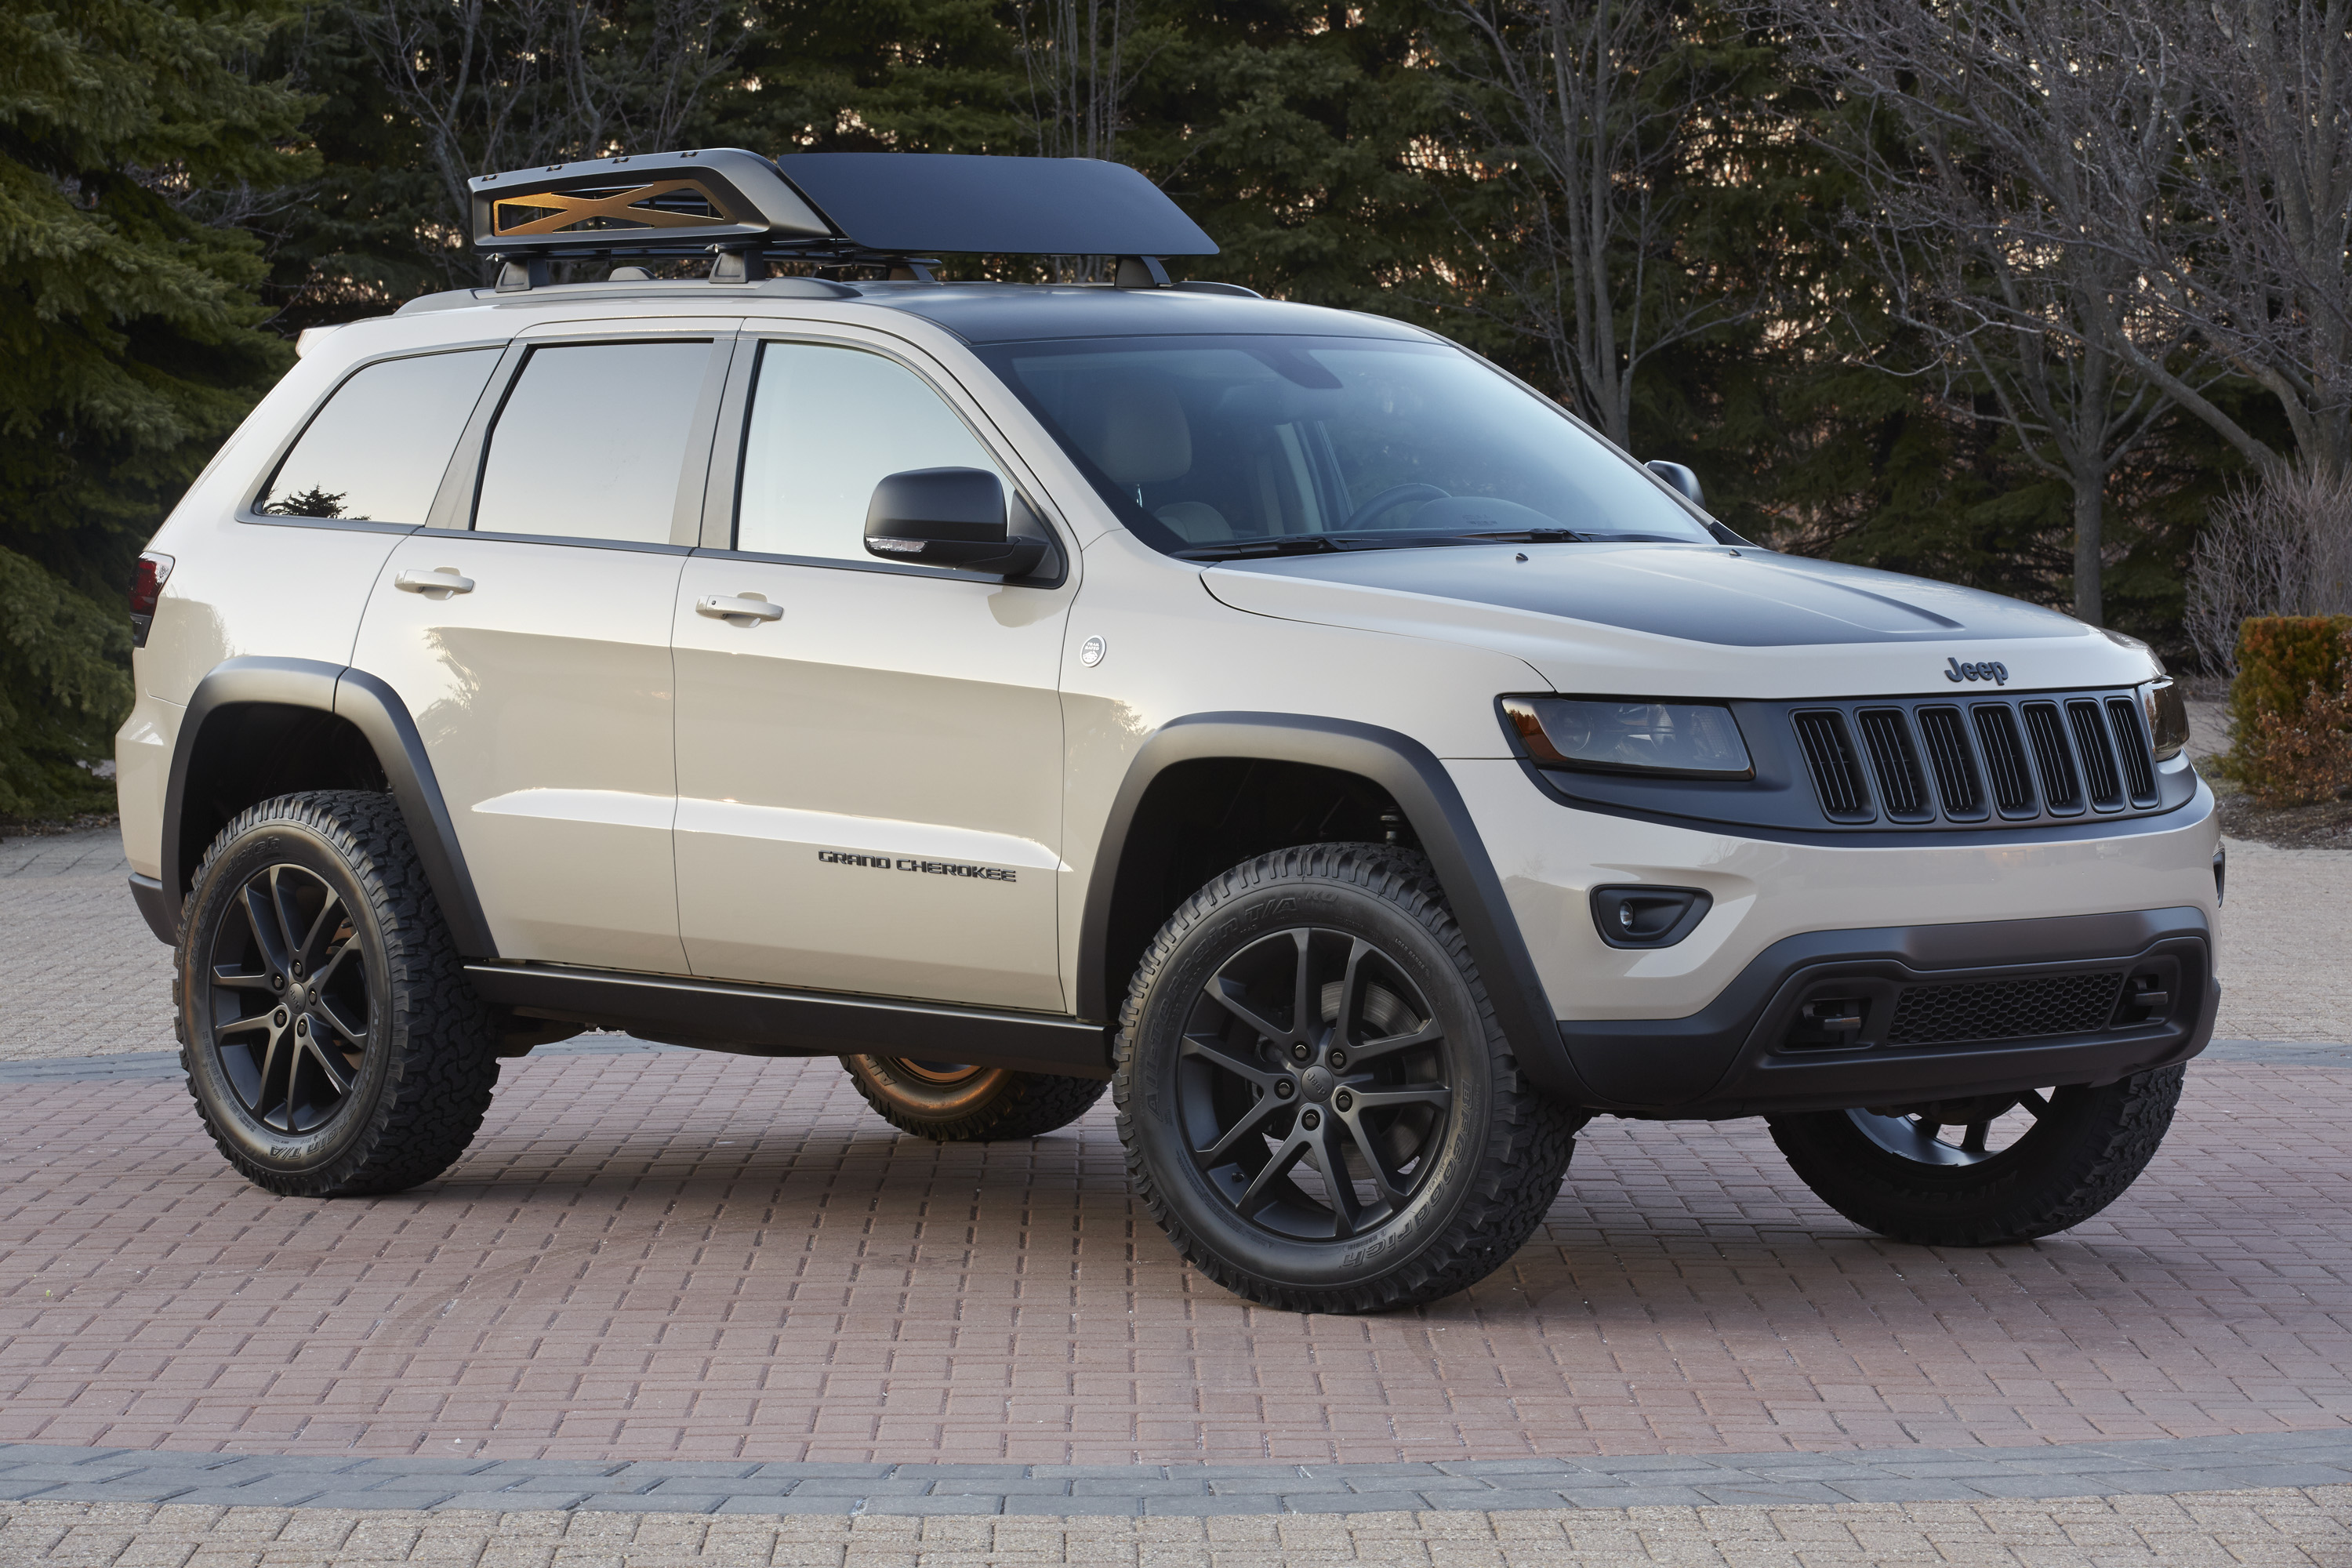 2014 Jeep Grand Cherokee EcoDiesel Trail Warrior Review ...